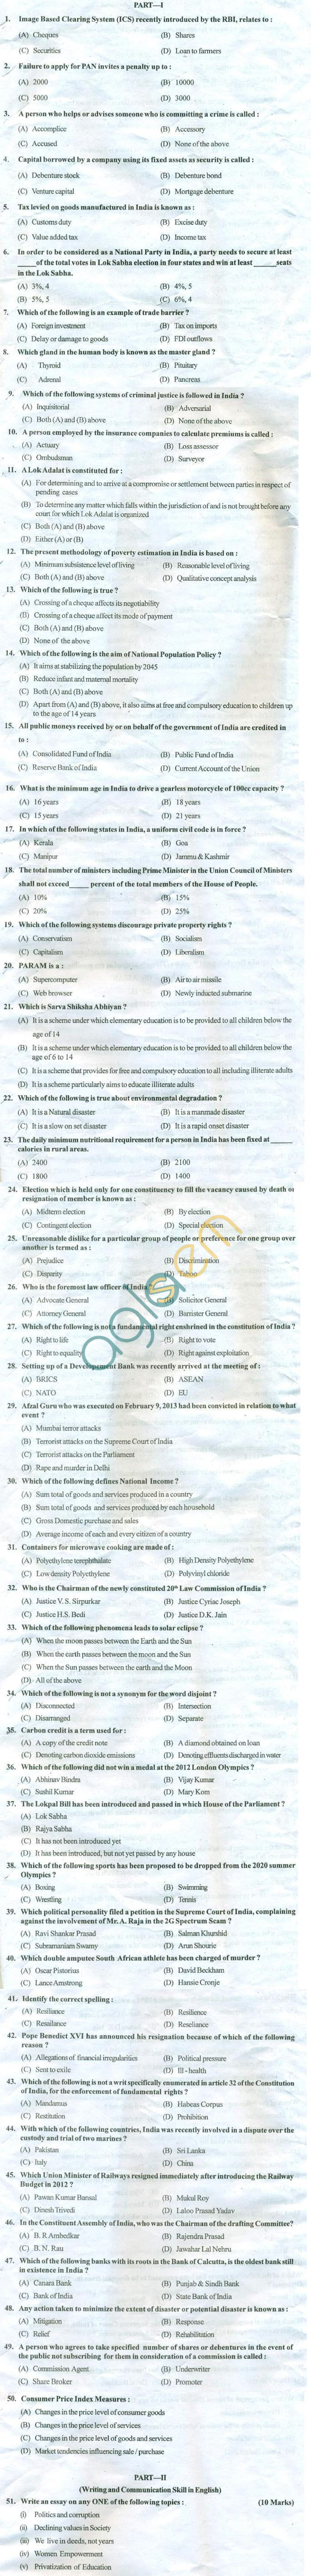 PU LL.B 2013 Question Paper with Answers   panjab university  Image